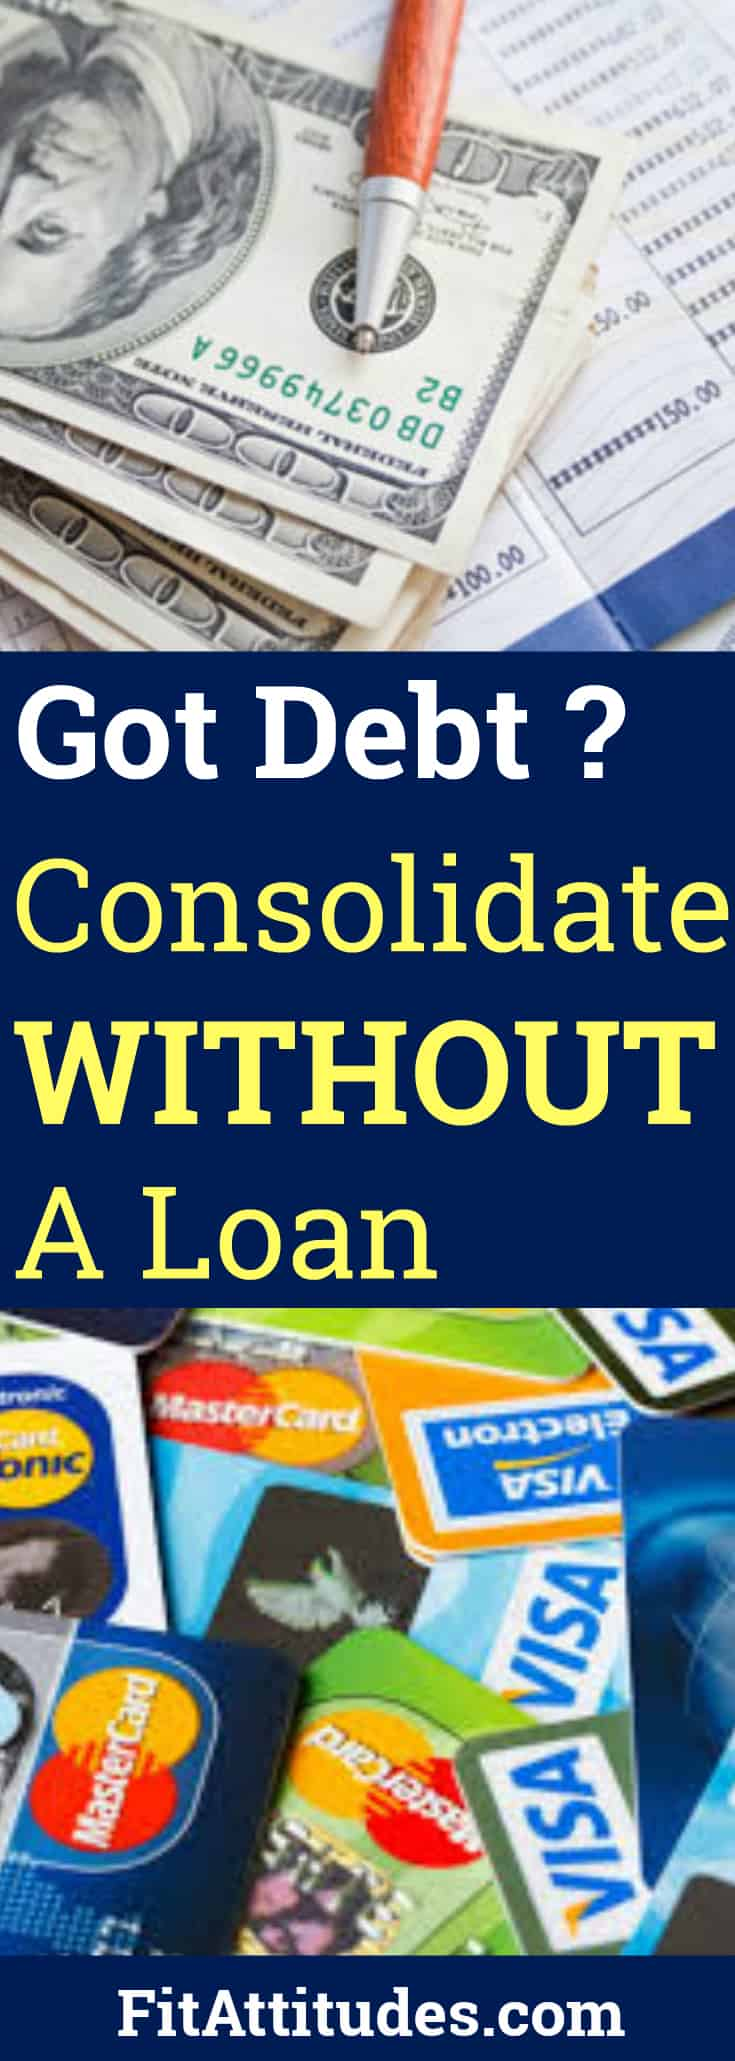 Got Debt? Use these tips for consolidating without a loan.